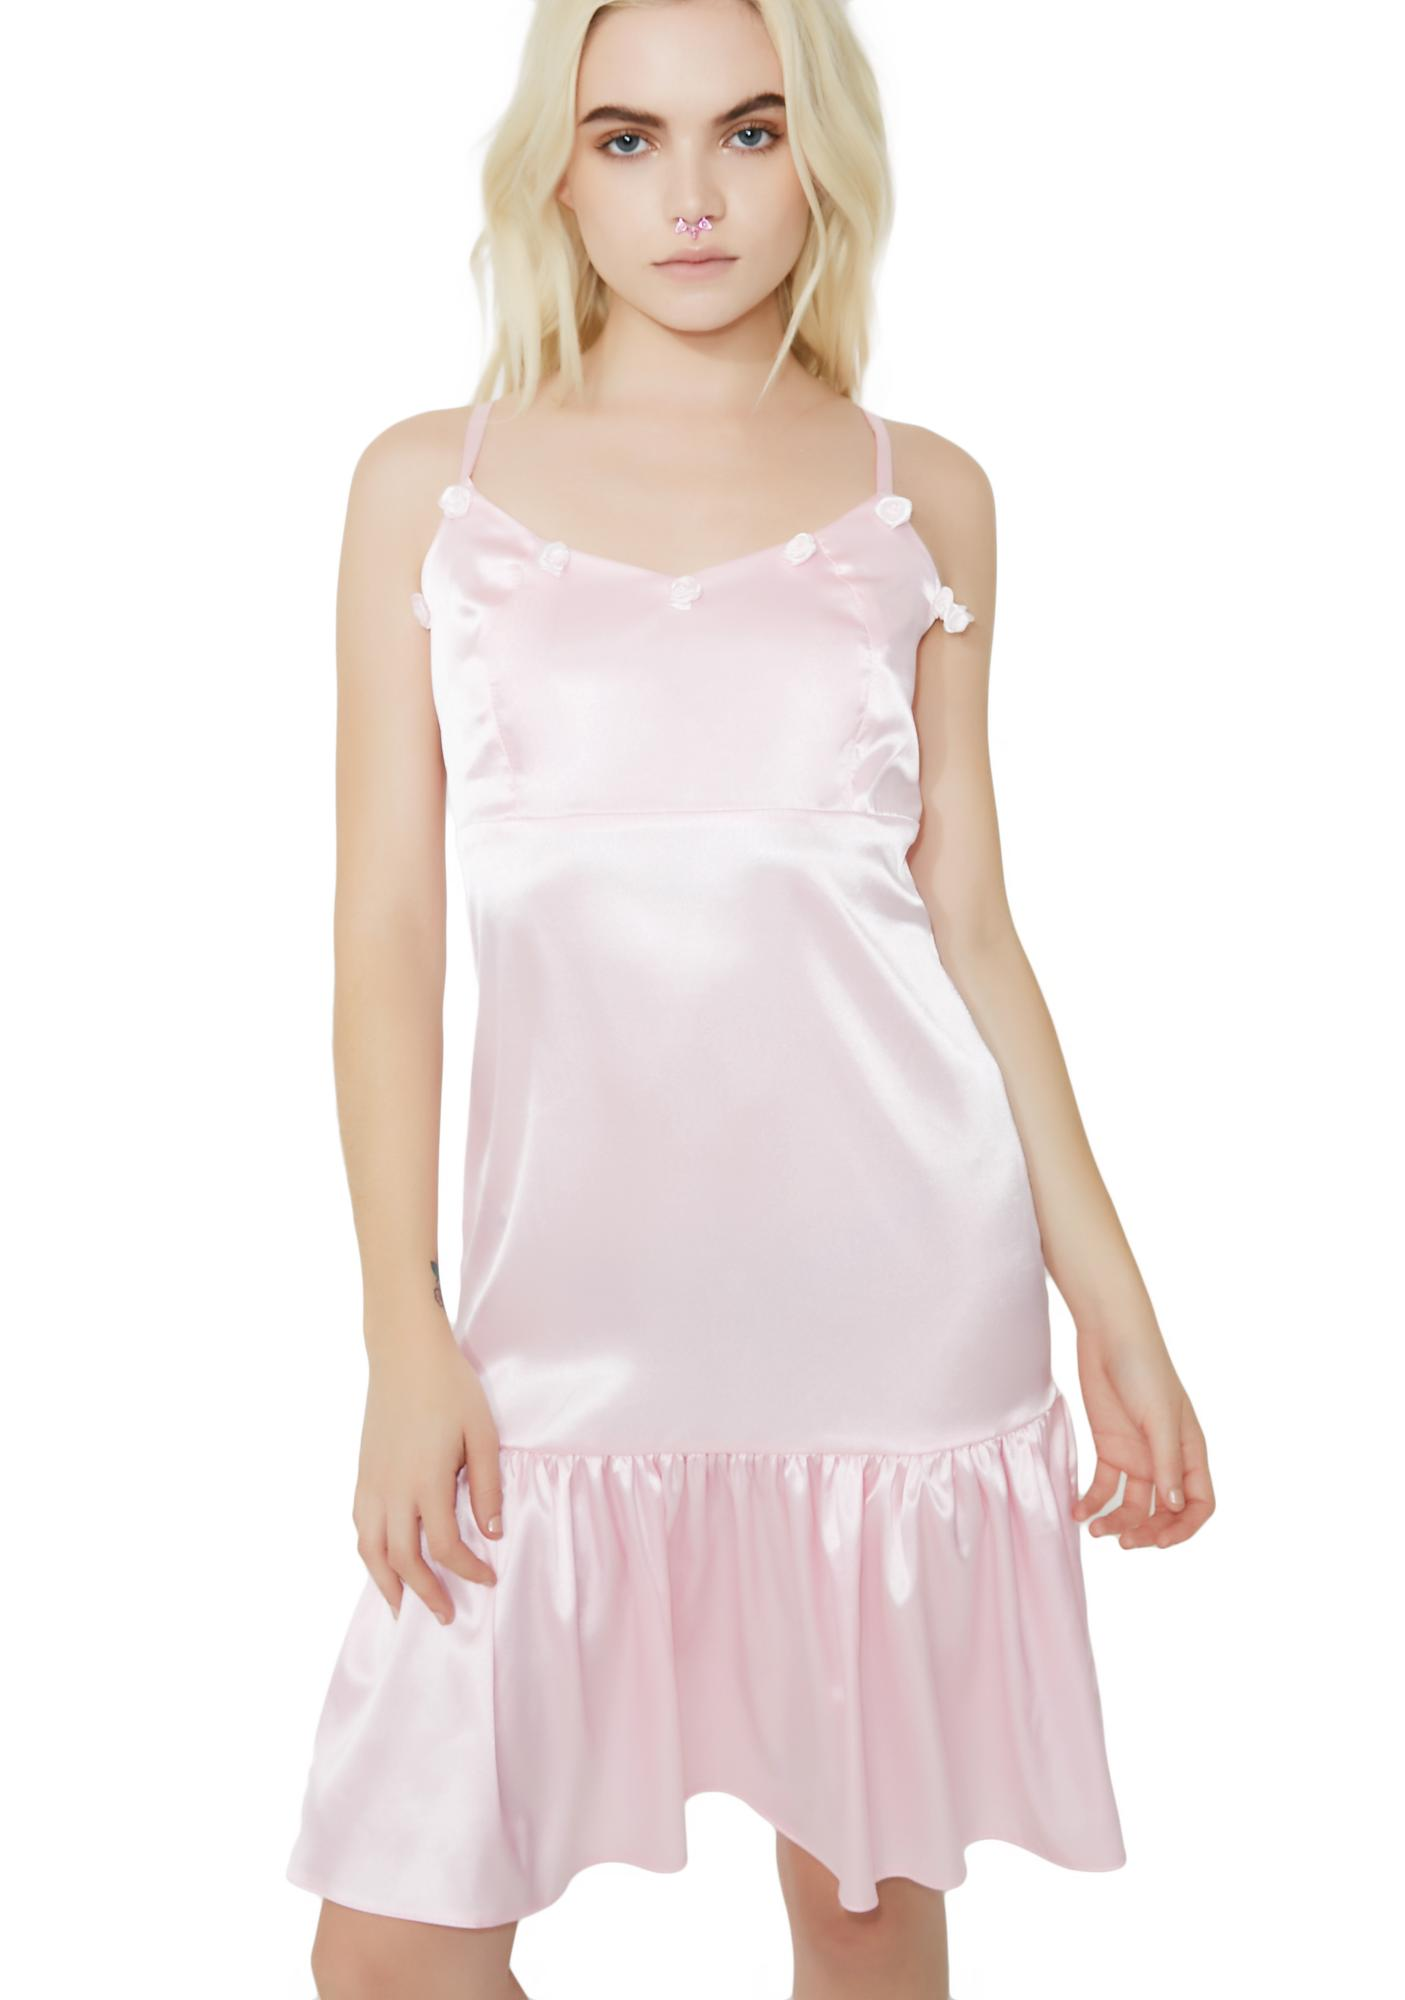 Sugarpills Roses Satin Dress